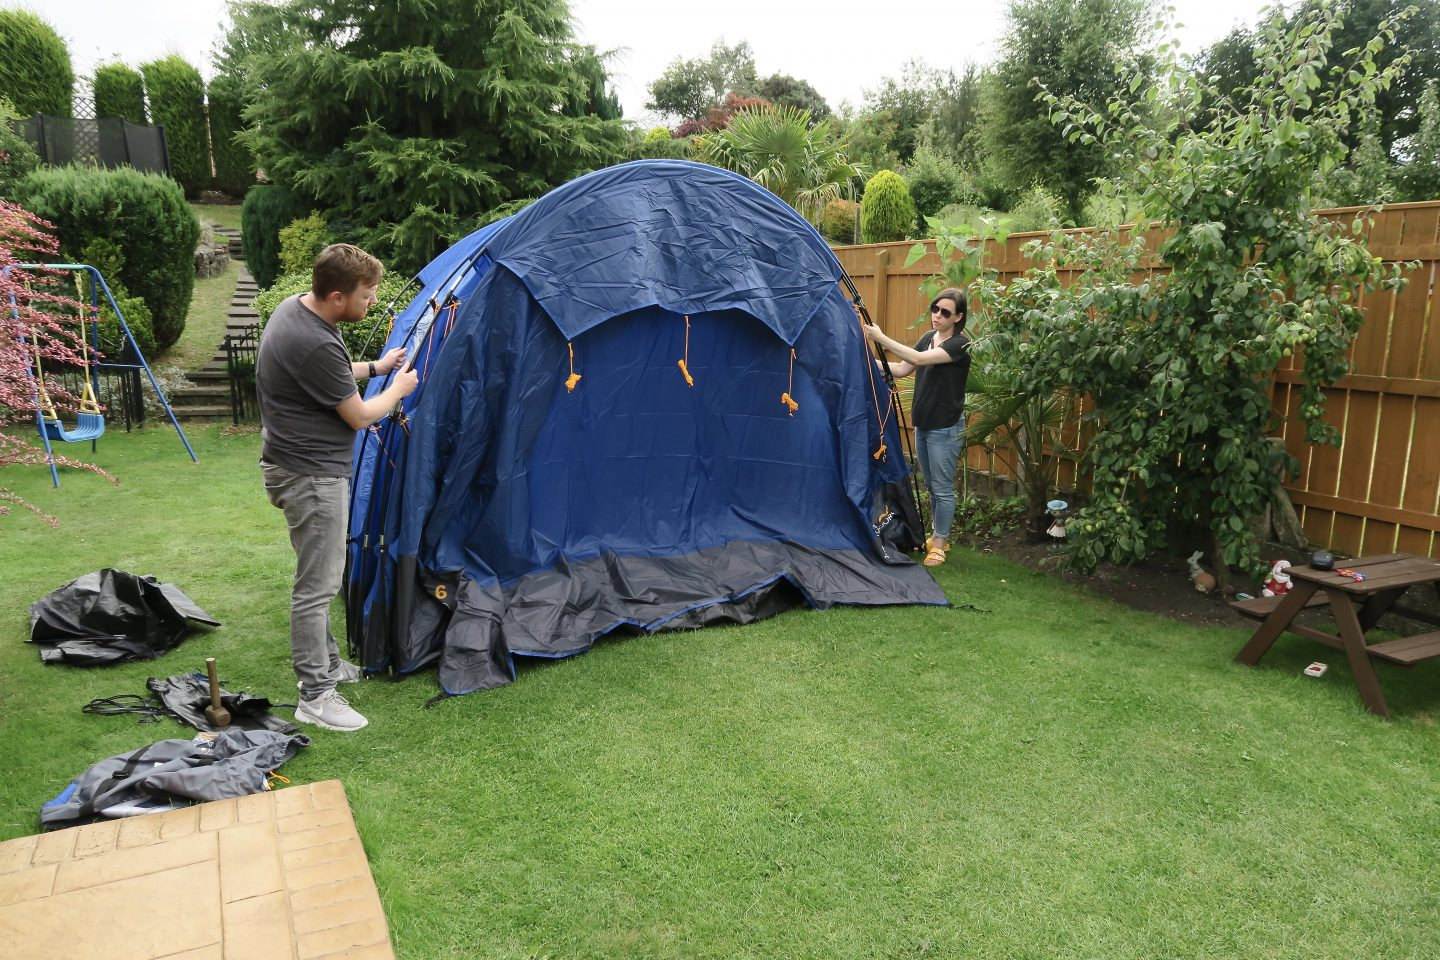 Man and woman putting up a large blue tent in a garden